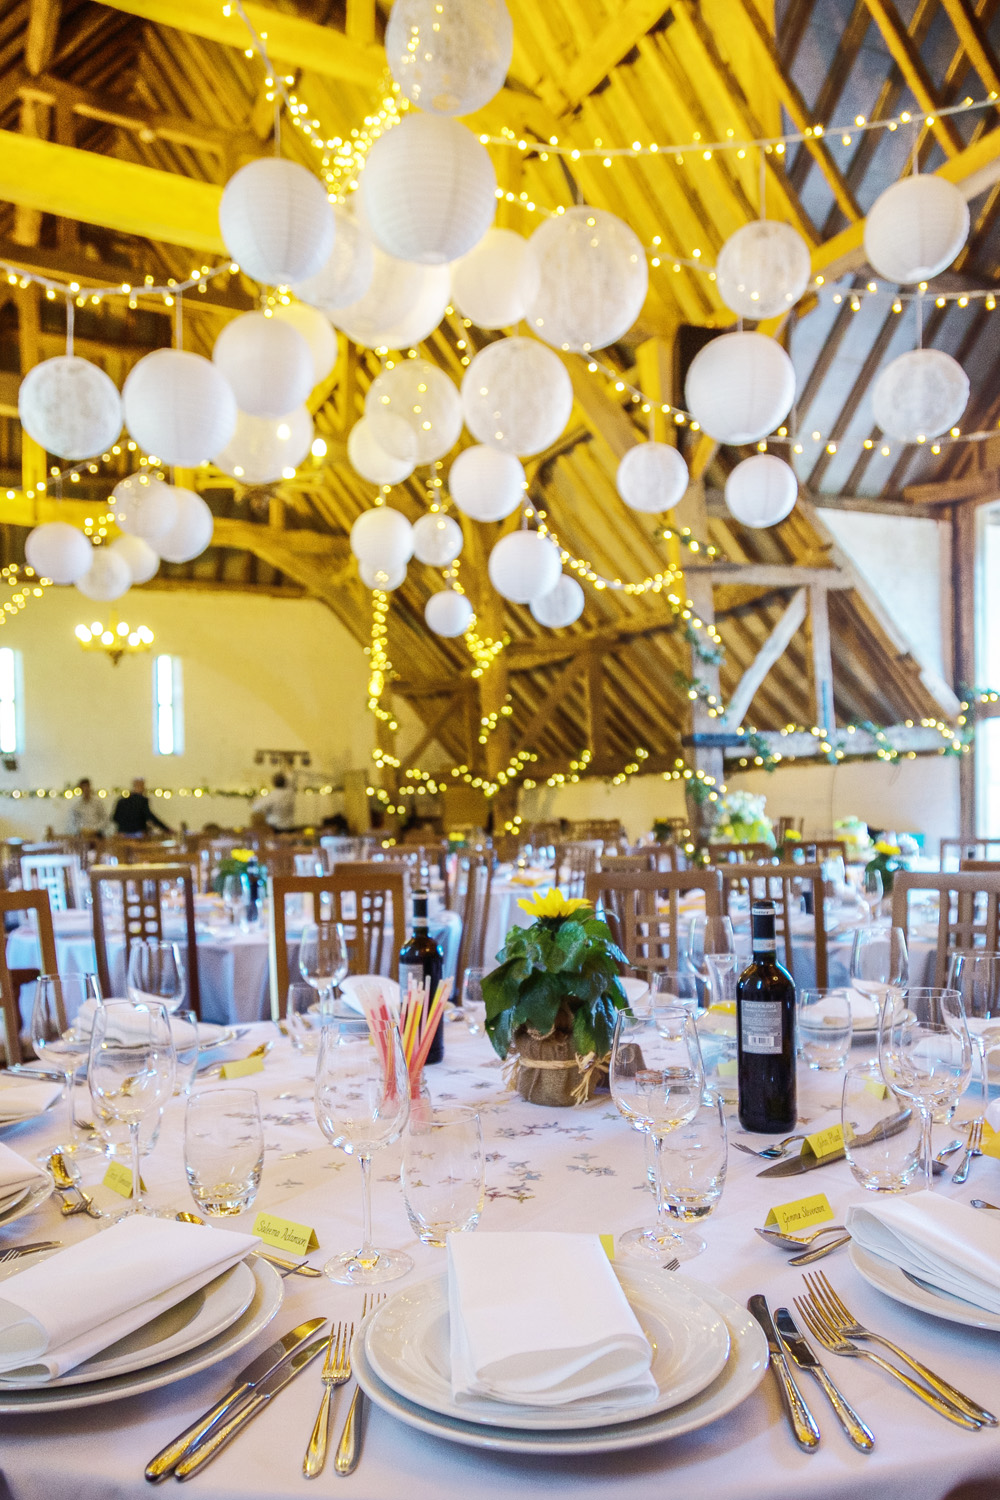 Ufton_Court_Barn_Wedding_Photographer_Reading_Berkshire_079.jpg